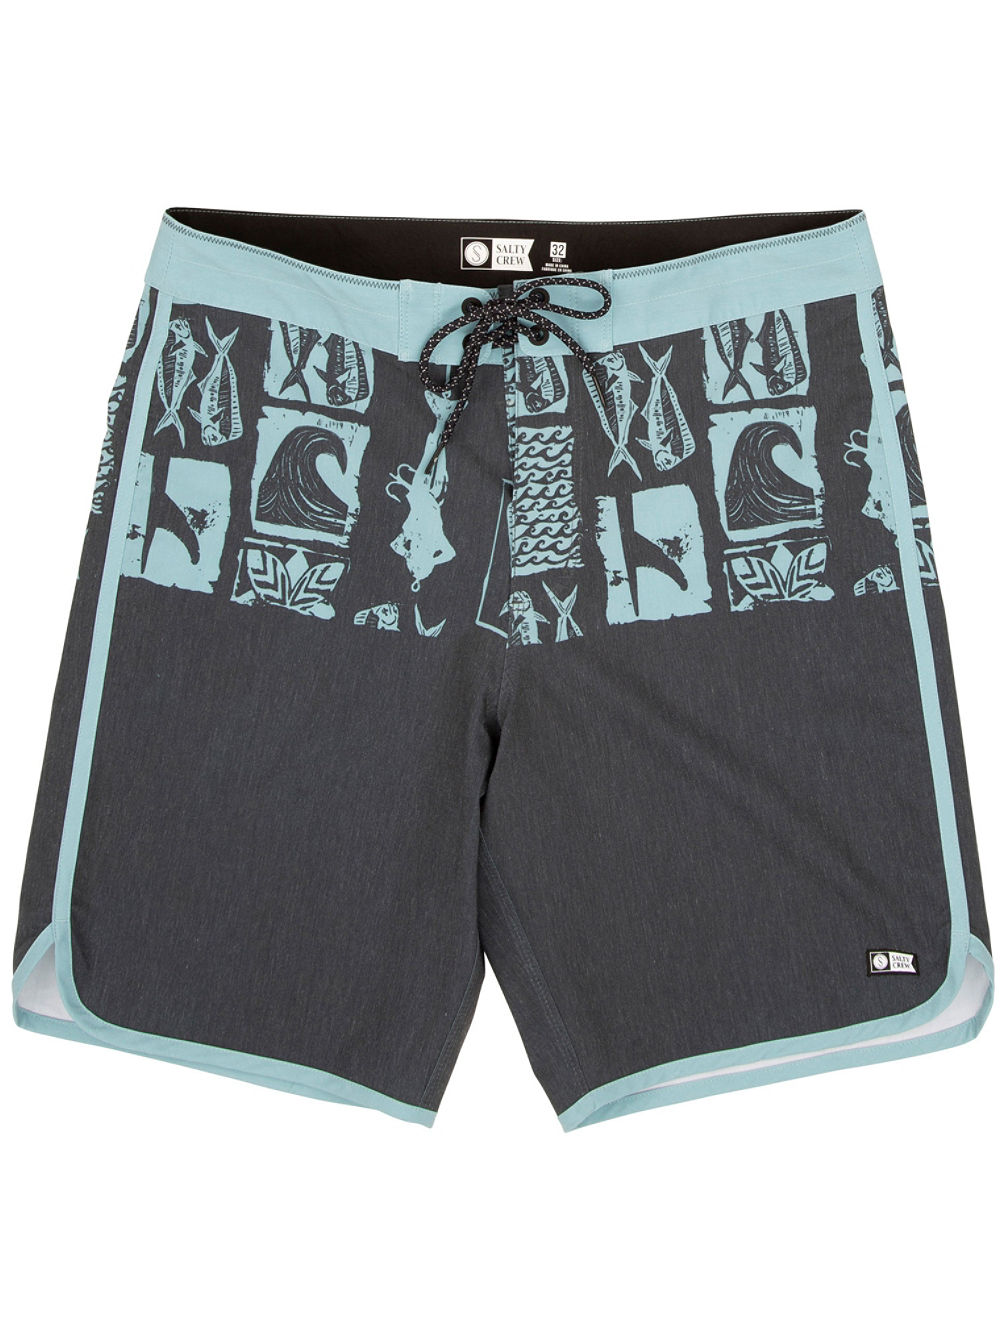 Cut Out Boardshorts